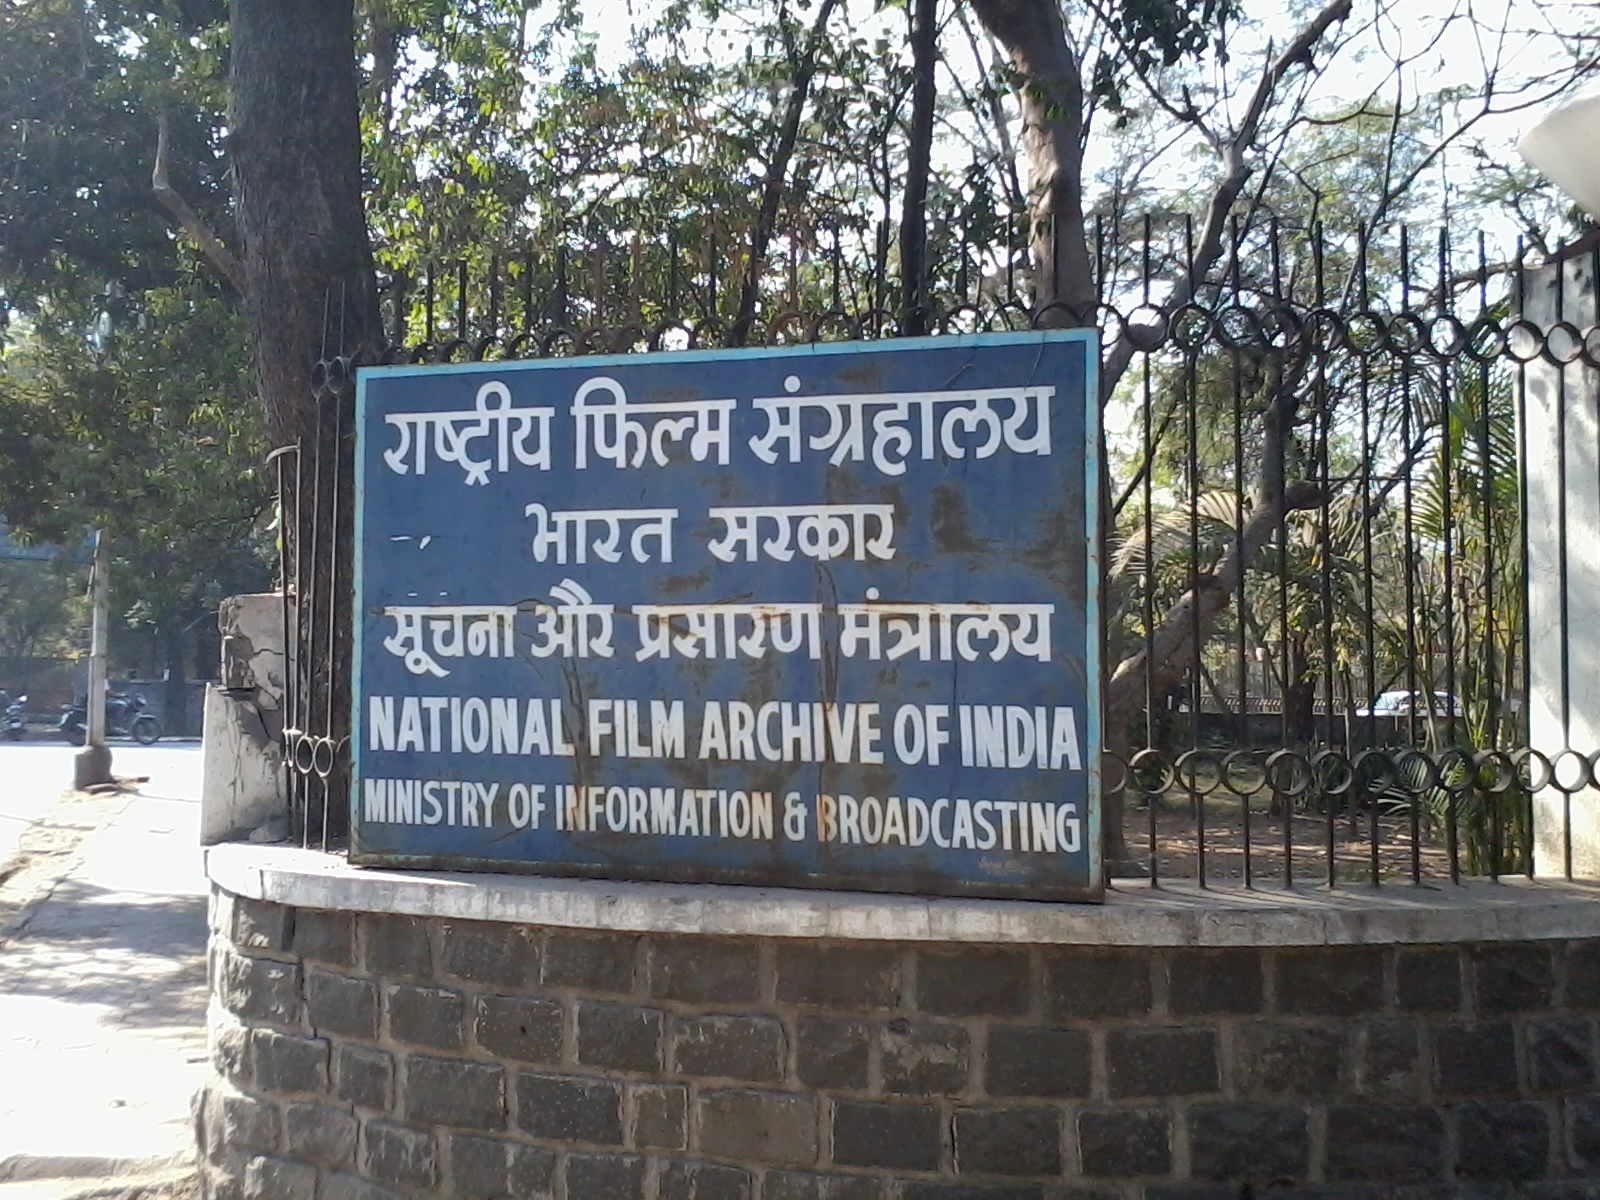 National Film Archive of India